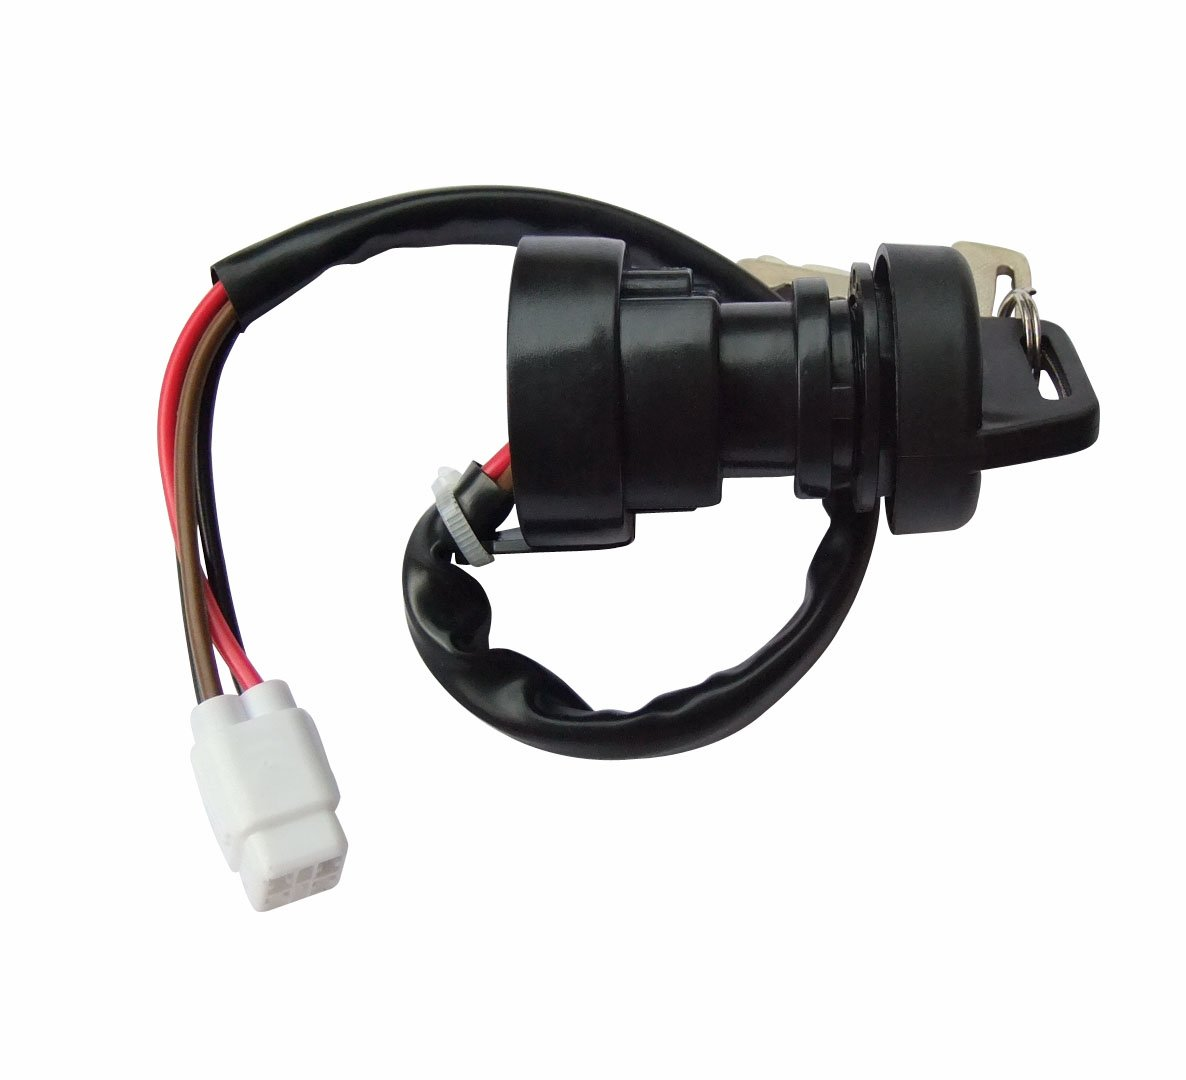 shamofeng Ignition Key Switch 4 PIN FOR Yamaha Grizzly 400 450 YFM 400 450 Kodiak 2/4WD 2007-2011 ATV